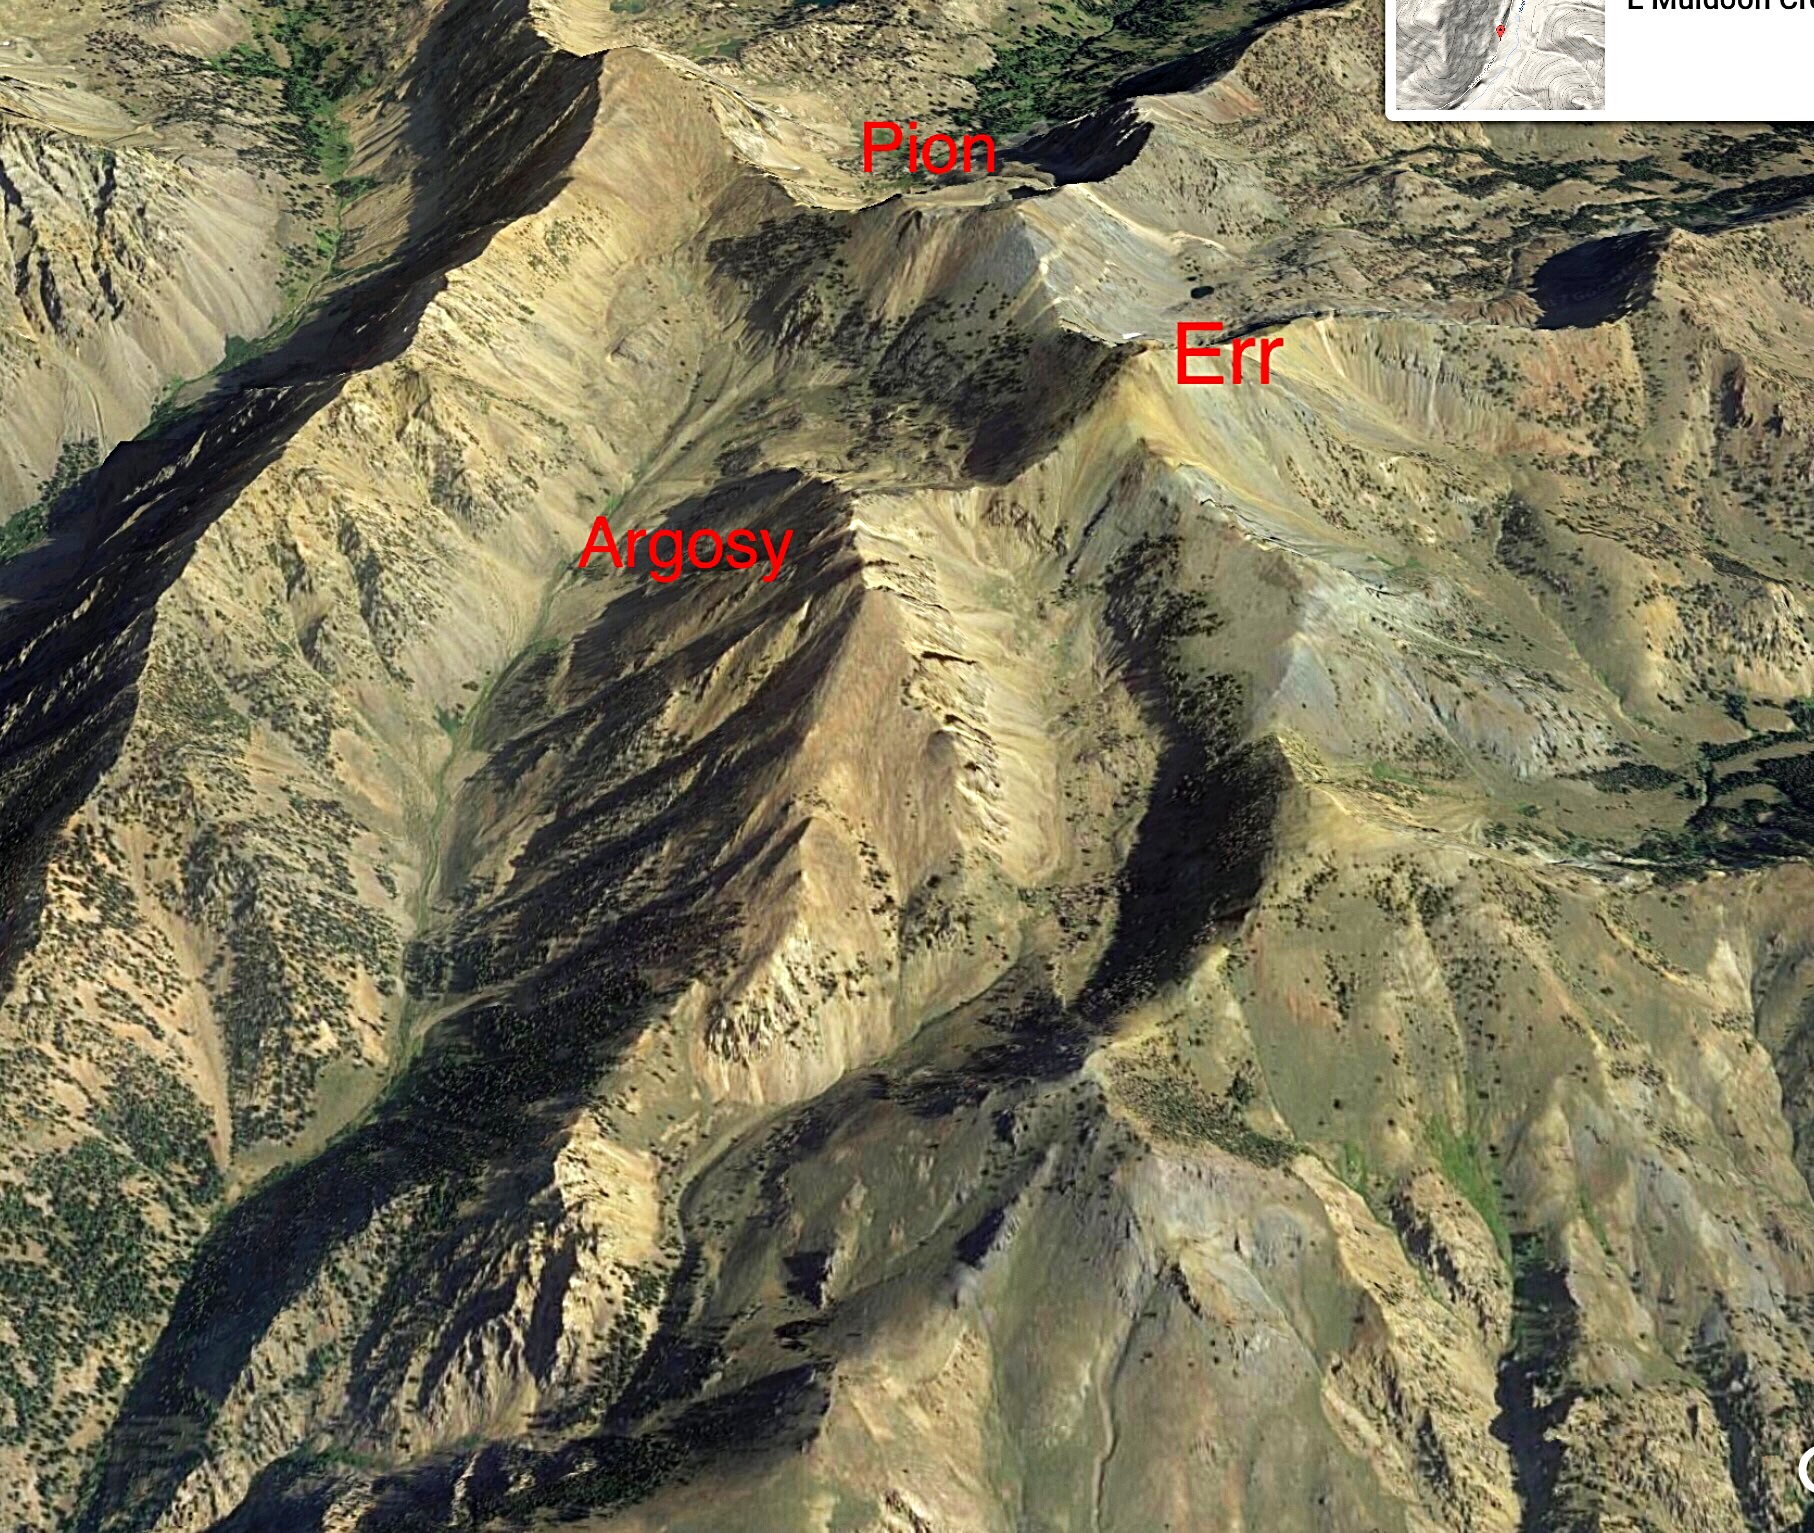 A Google Earth image of the Argosy Trio.